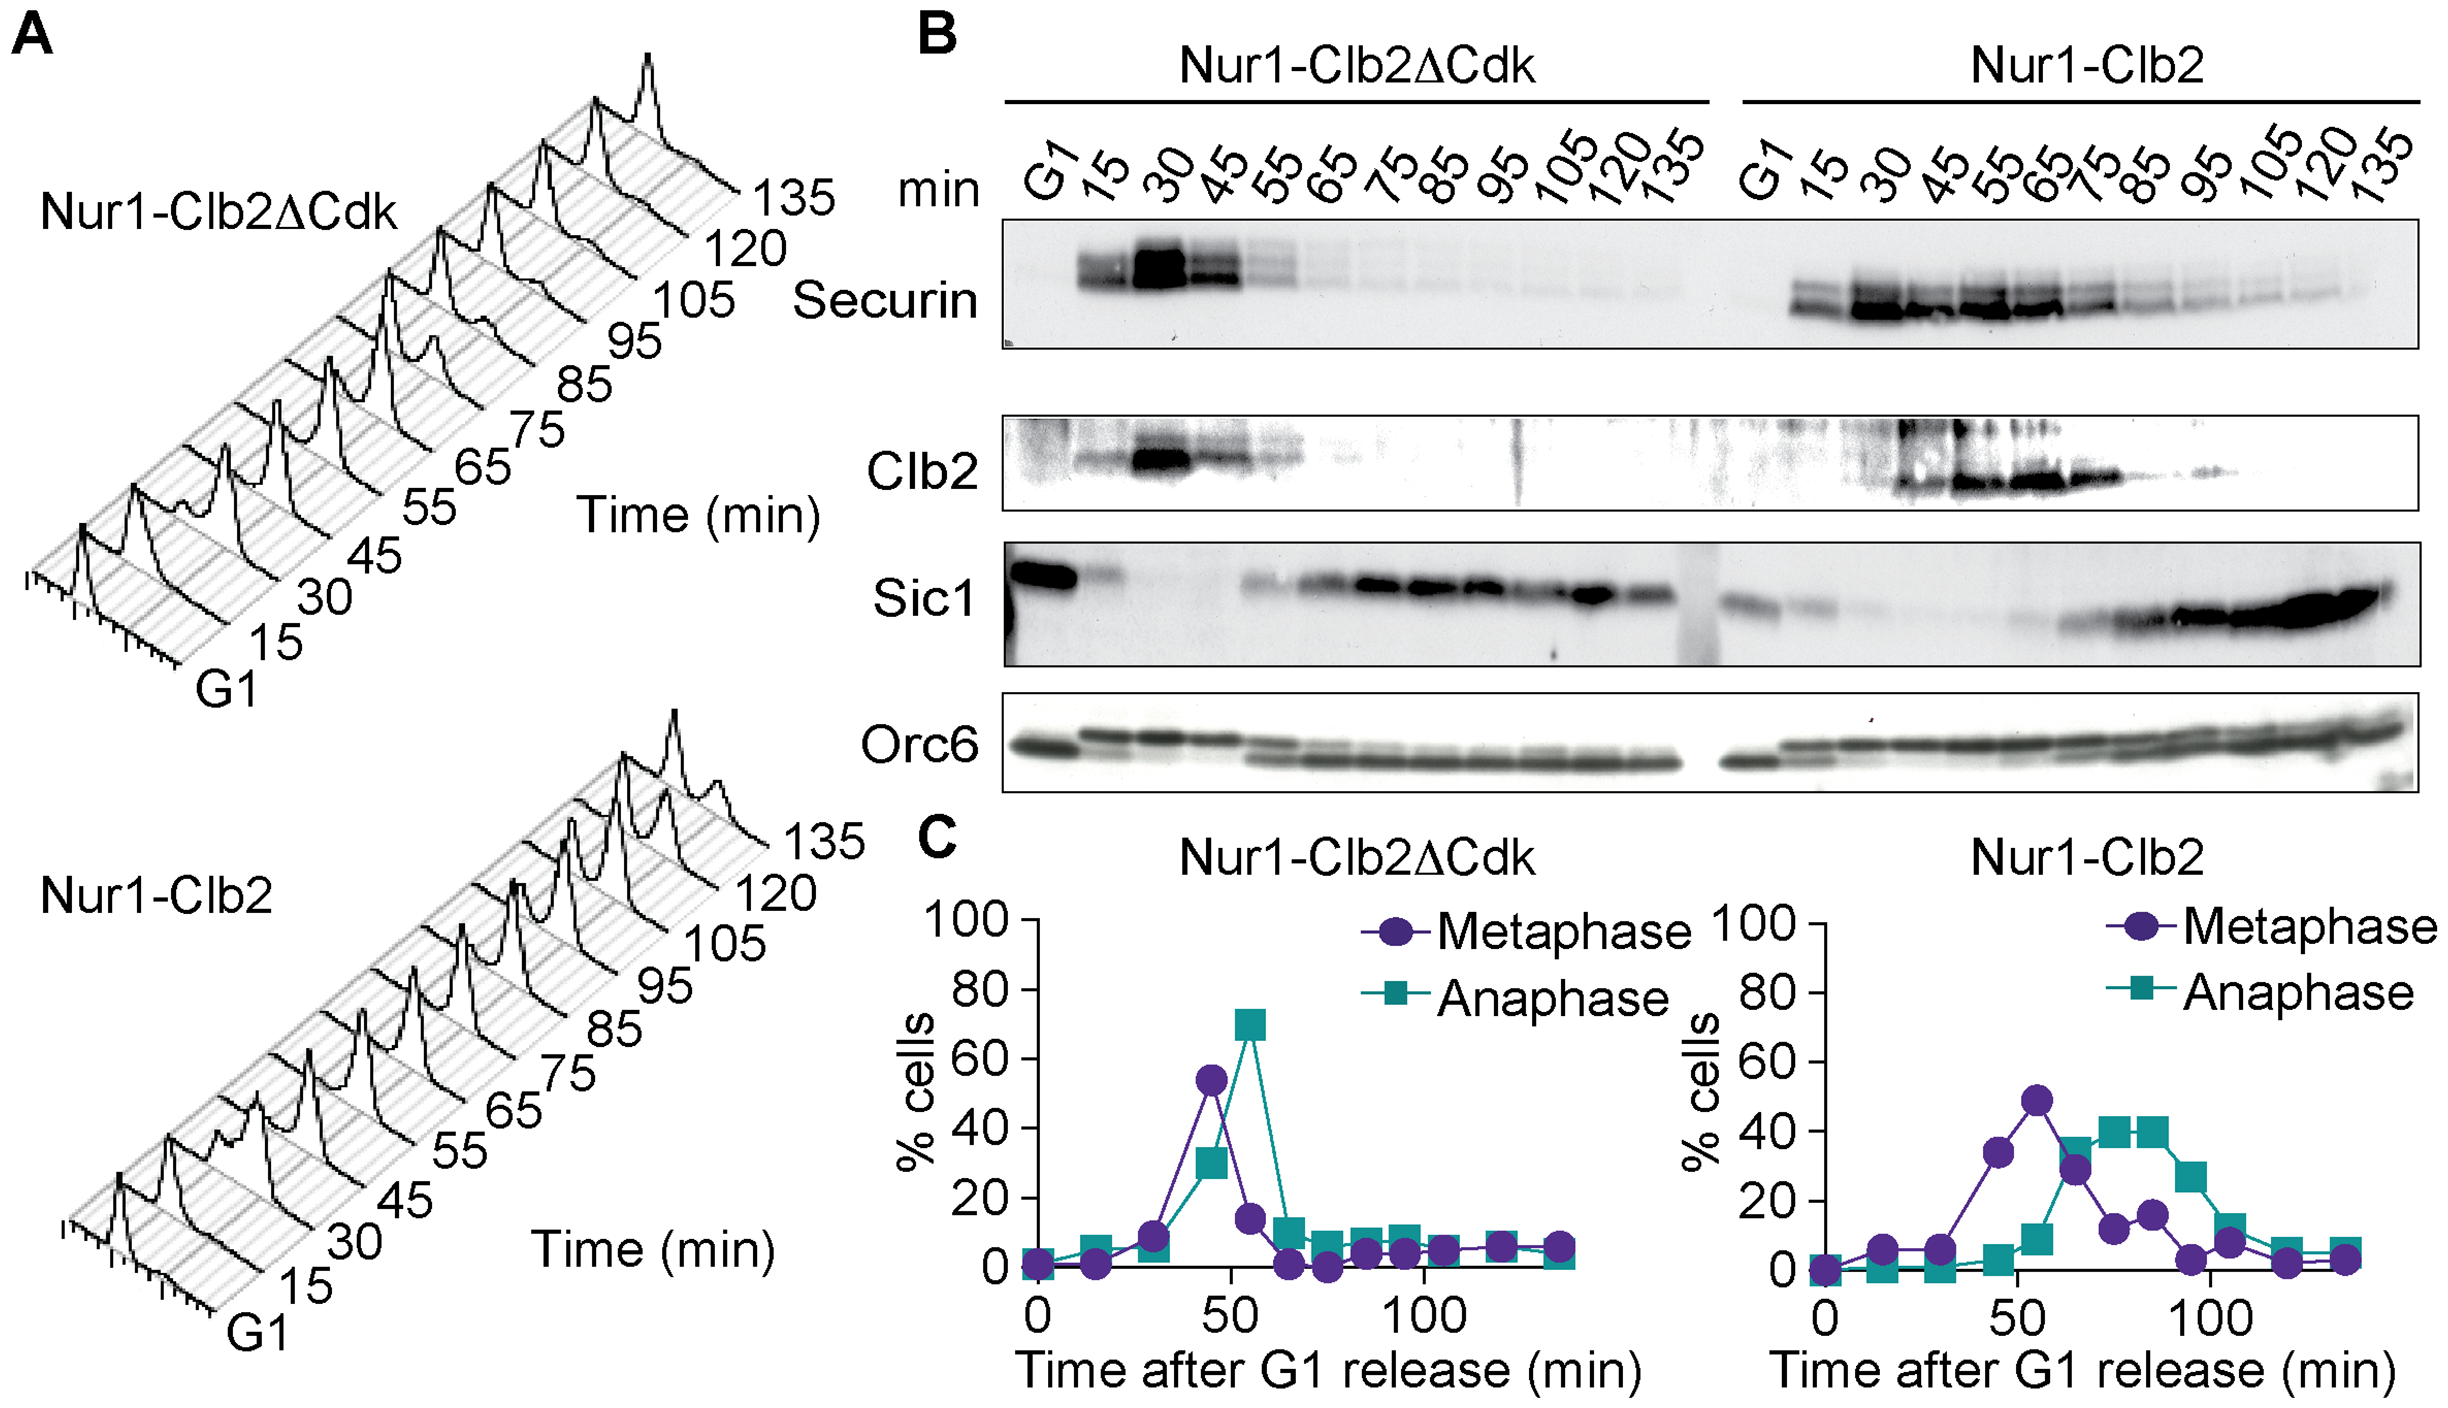 Nur1-Clb2 causes a mitotic exit defect.